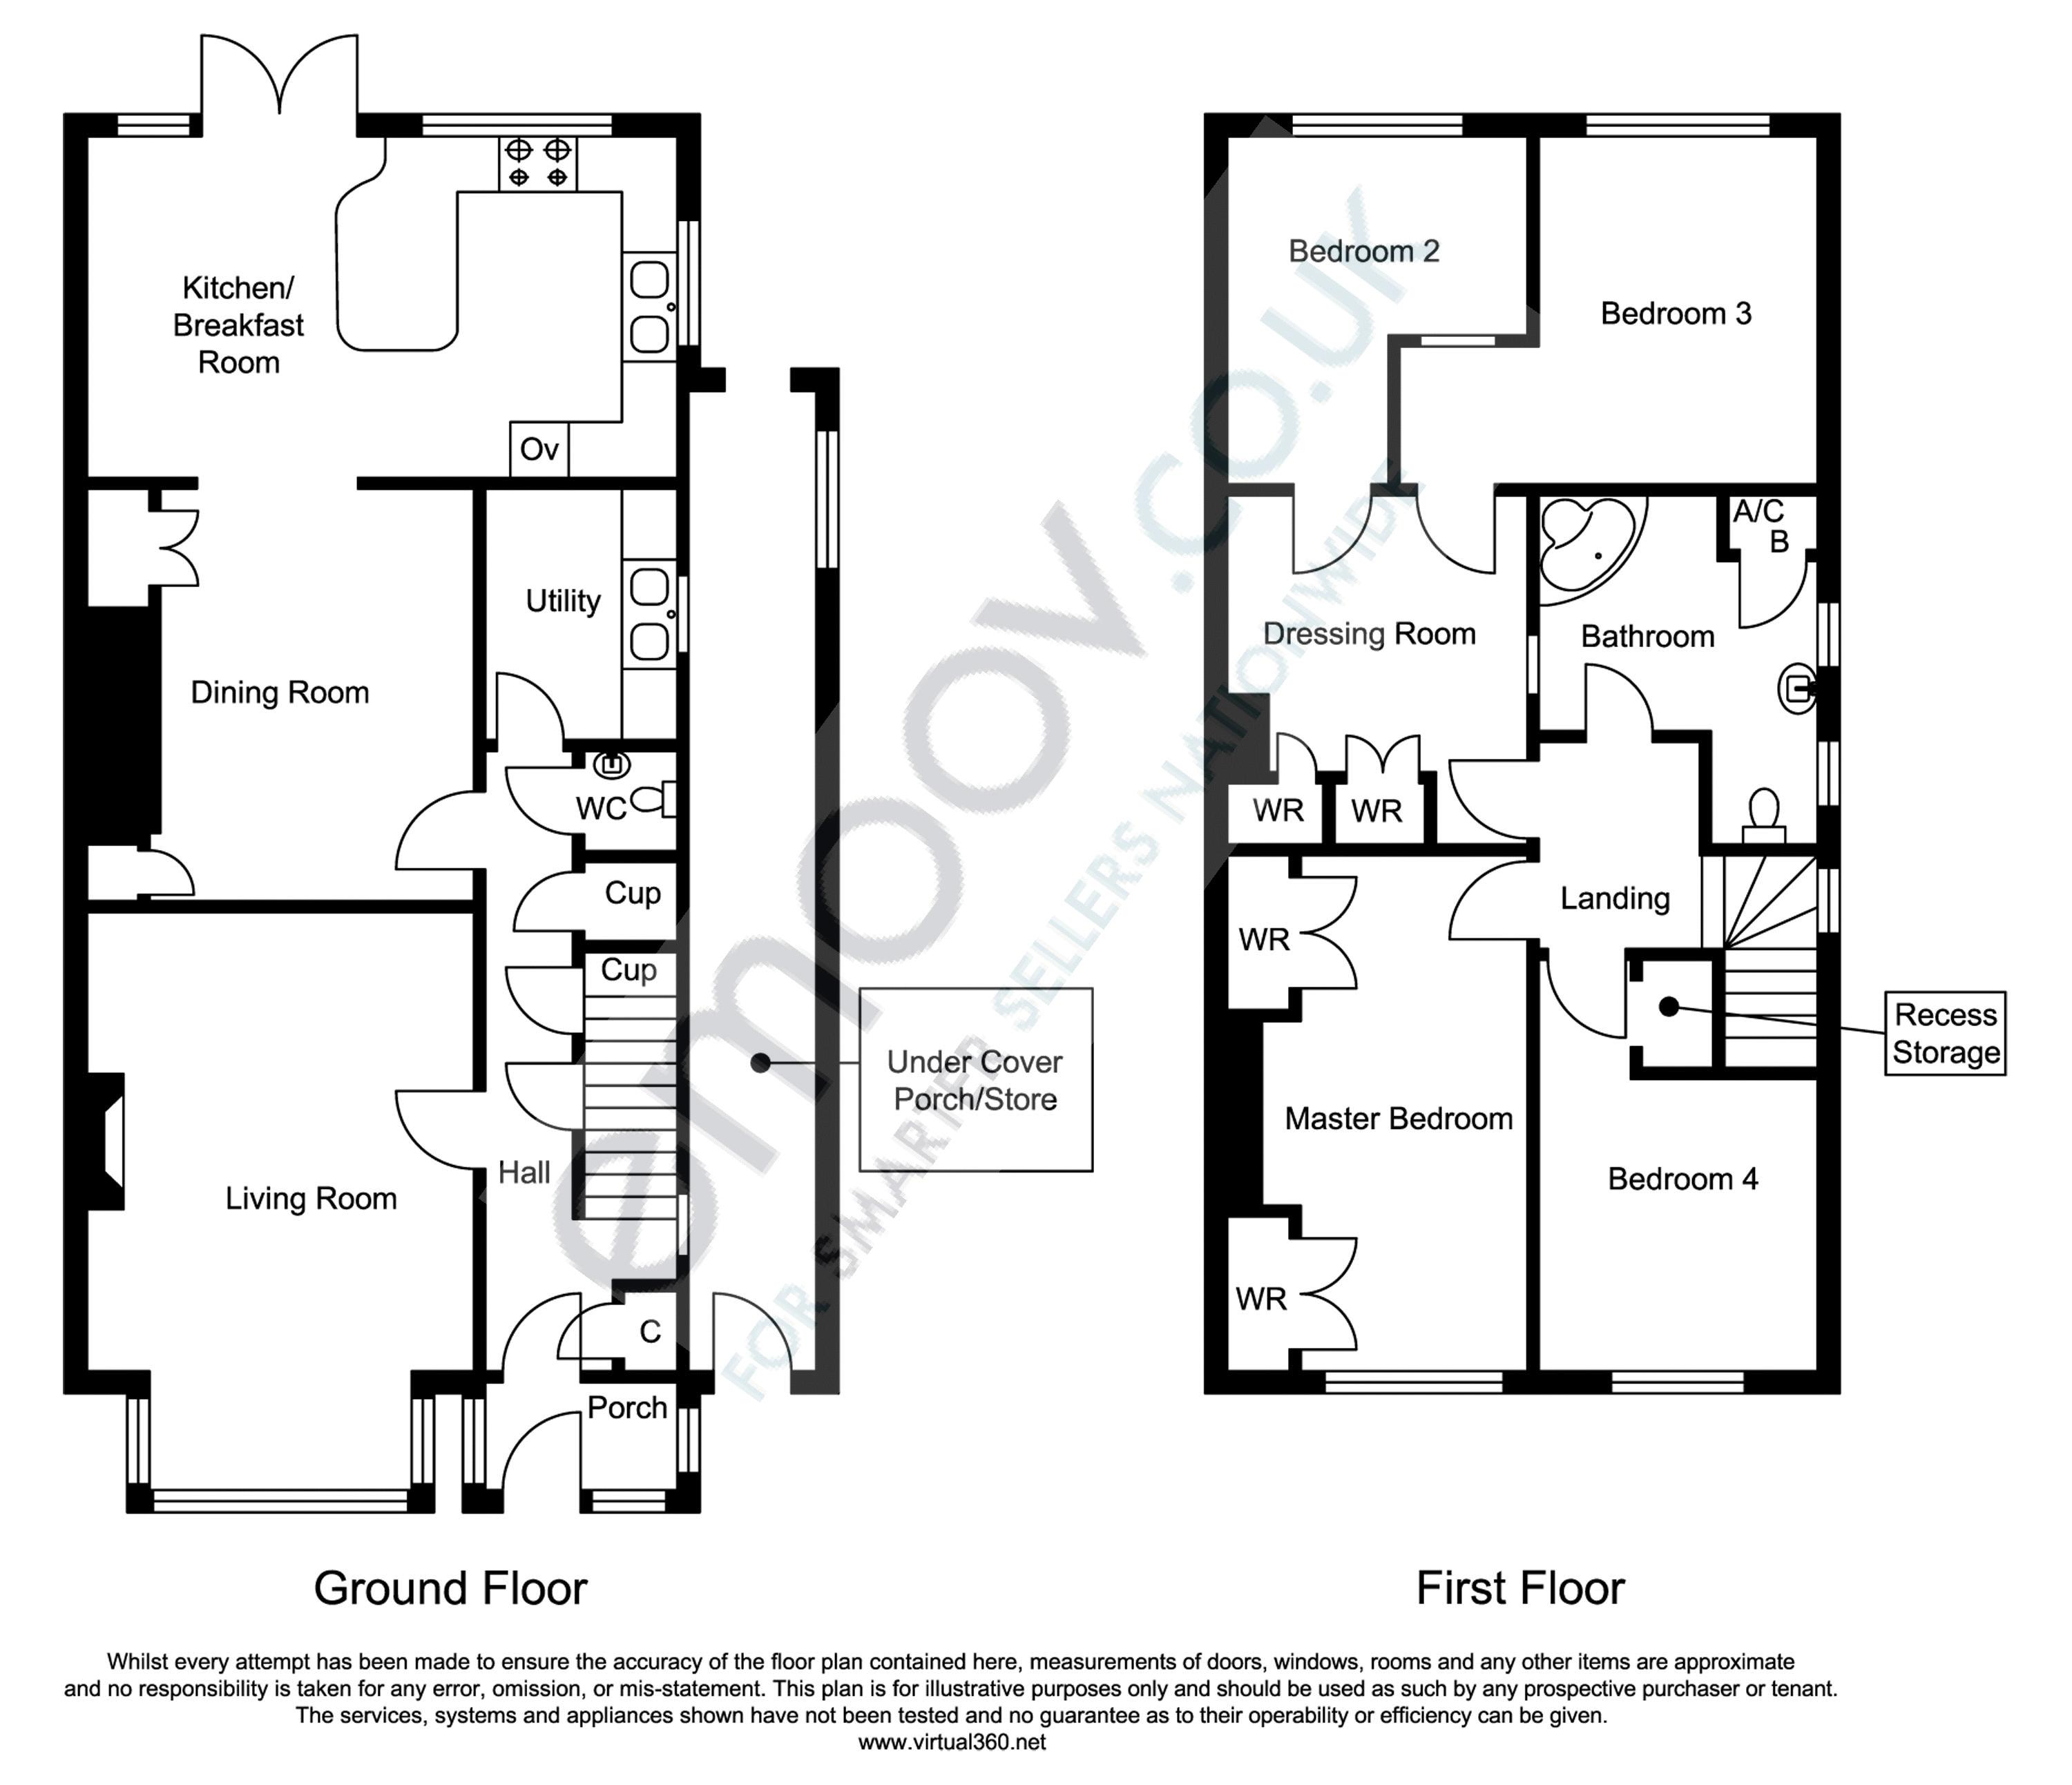 West View Road, Bristol floor plan